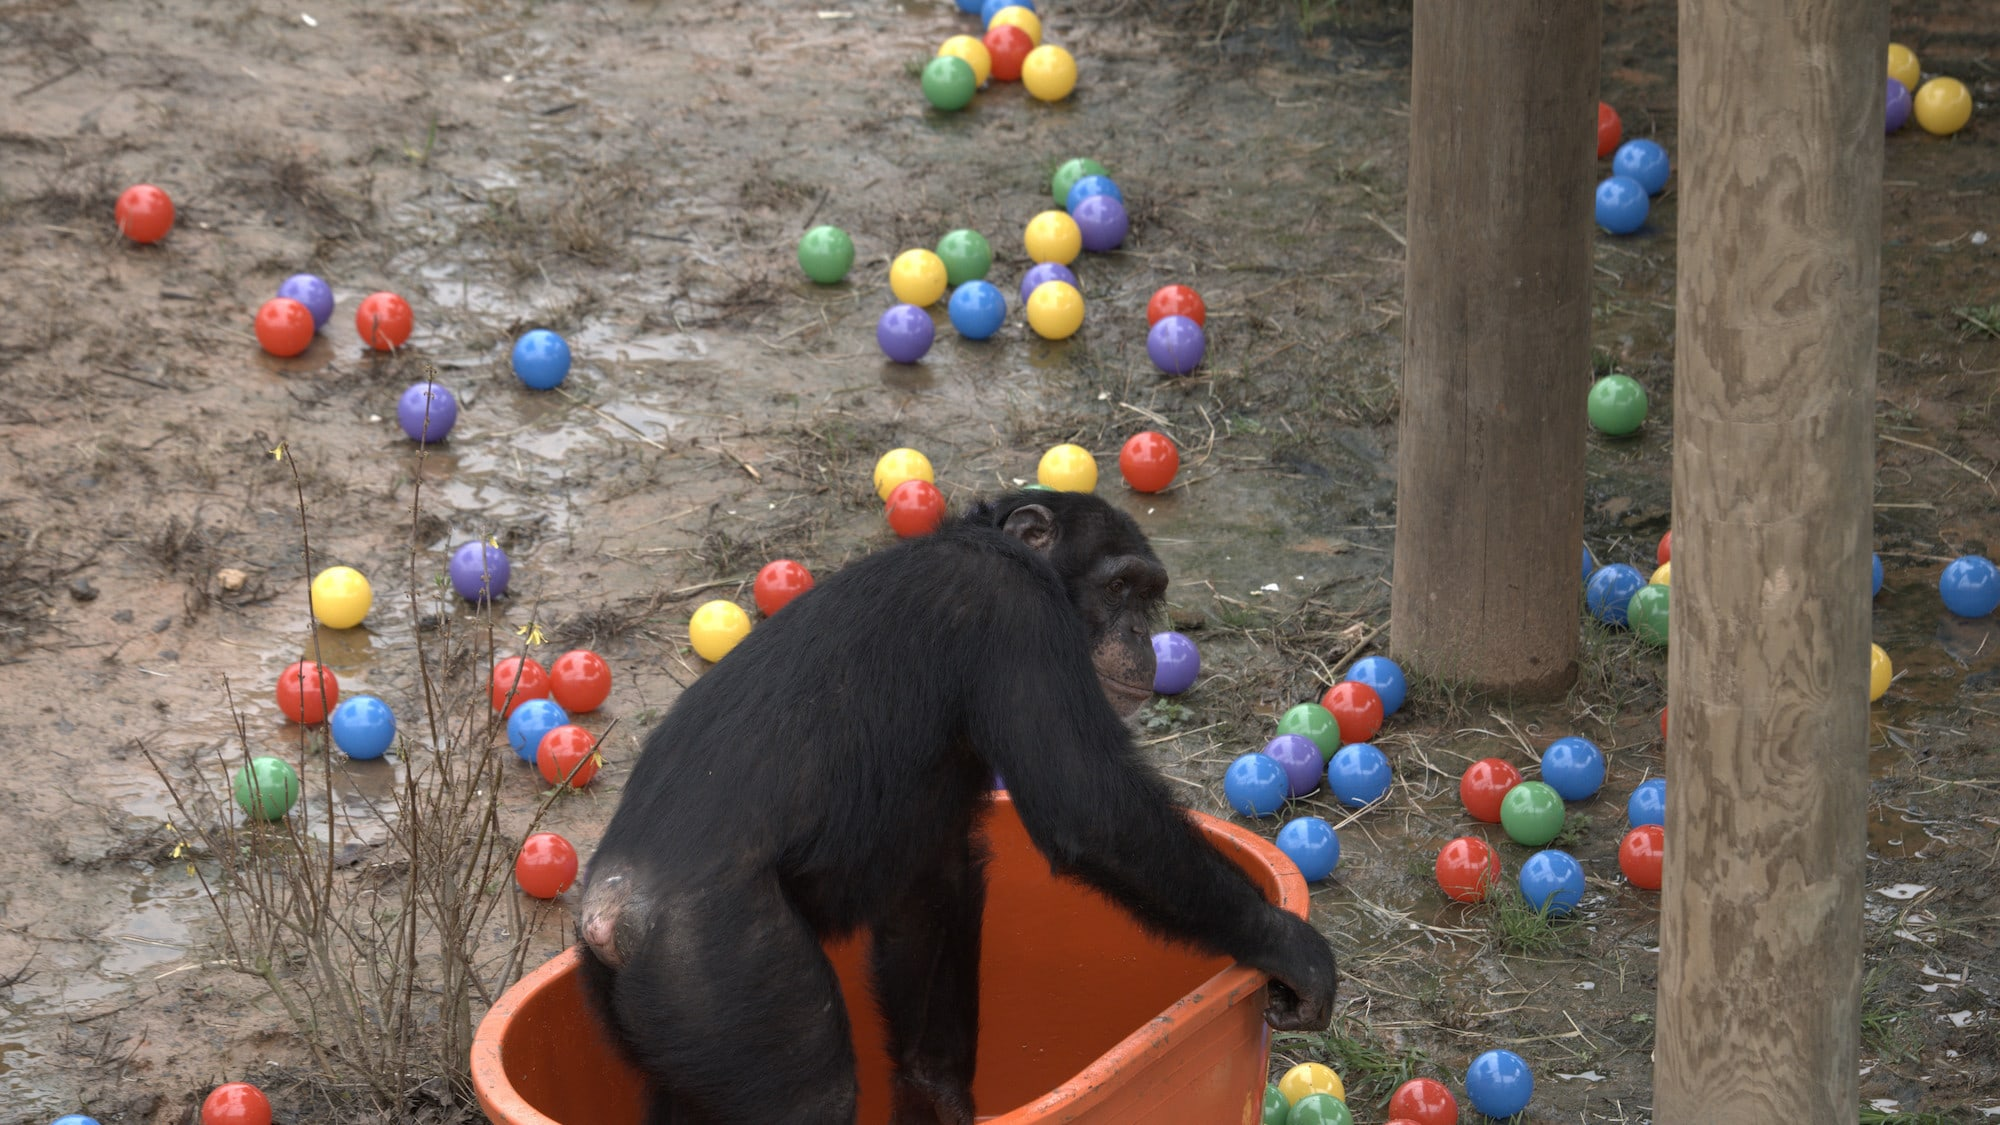 Riley is in the empty ball pit, all the balls are all over the ground after he's emptied the pit. Slim's group. (National Geographic/Virginia Quinn)